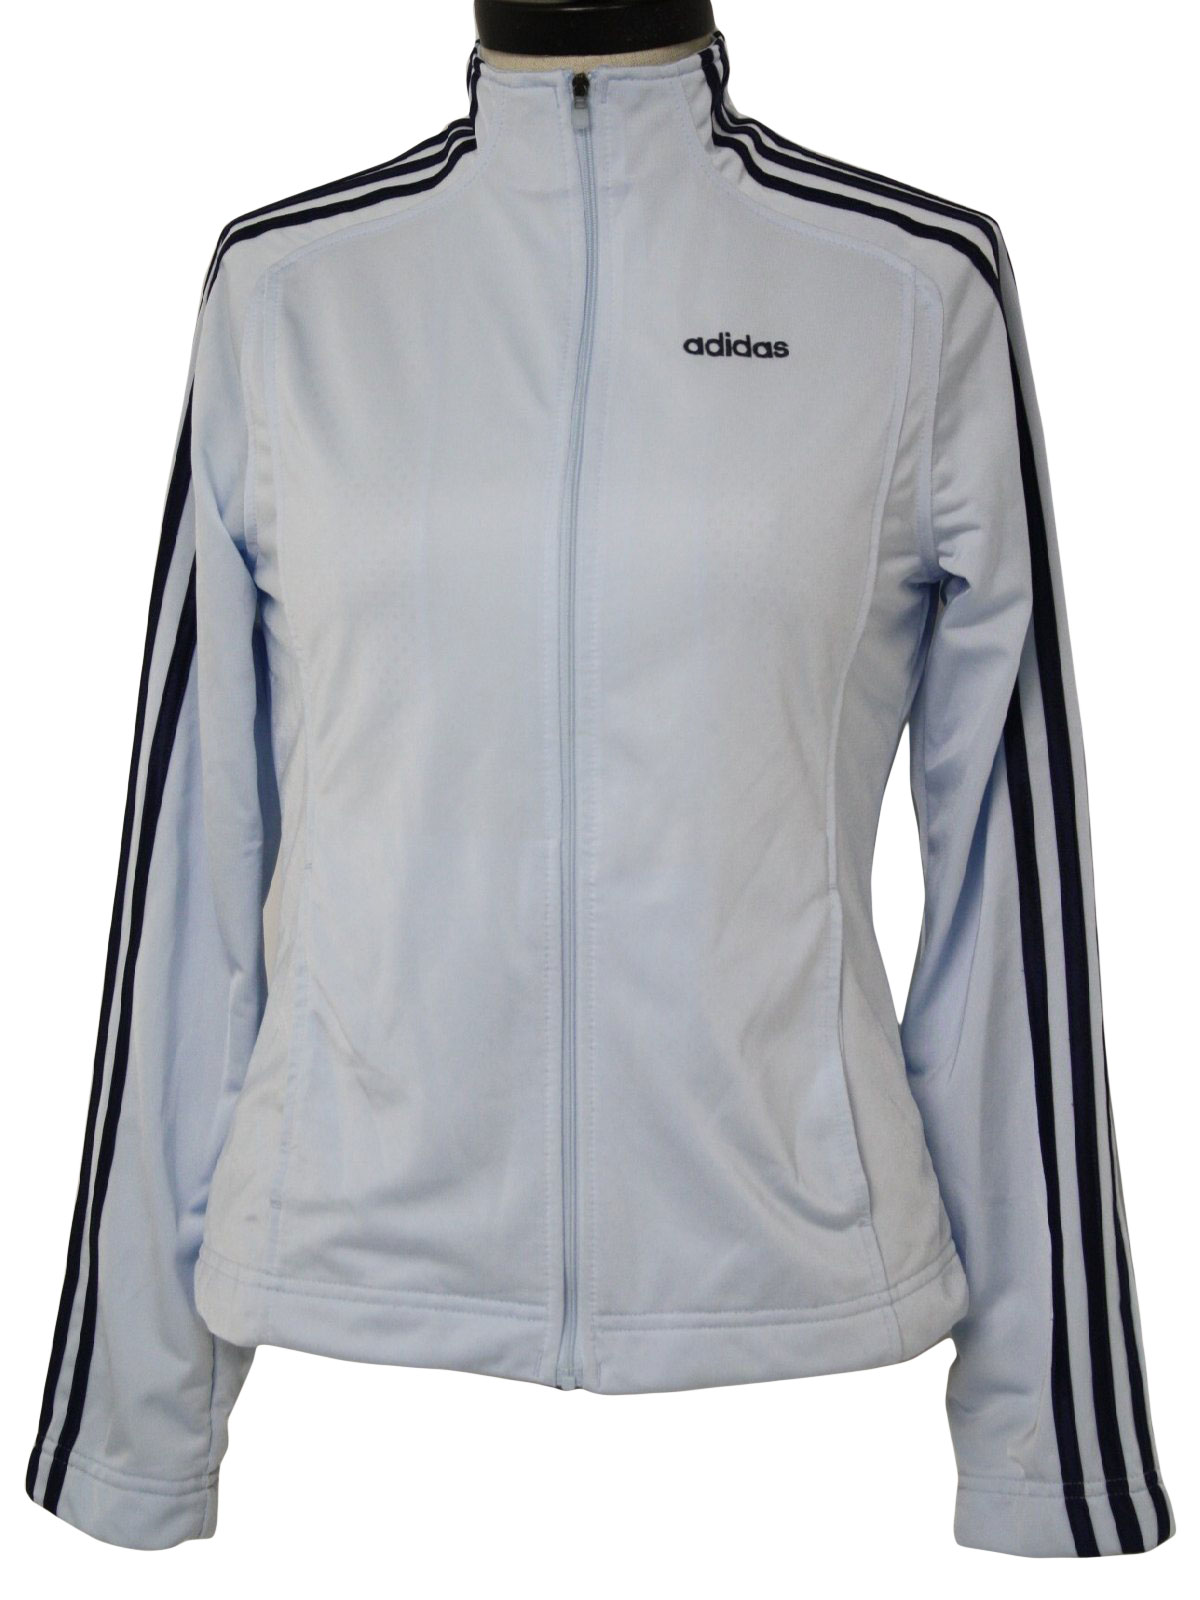 Retro 90s Jacket (Adidas) : 90s -Adidas- Womens sky blue and navy blue  polyester long sleeve track jacket with adidas logo embroidered on left  chest, ...